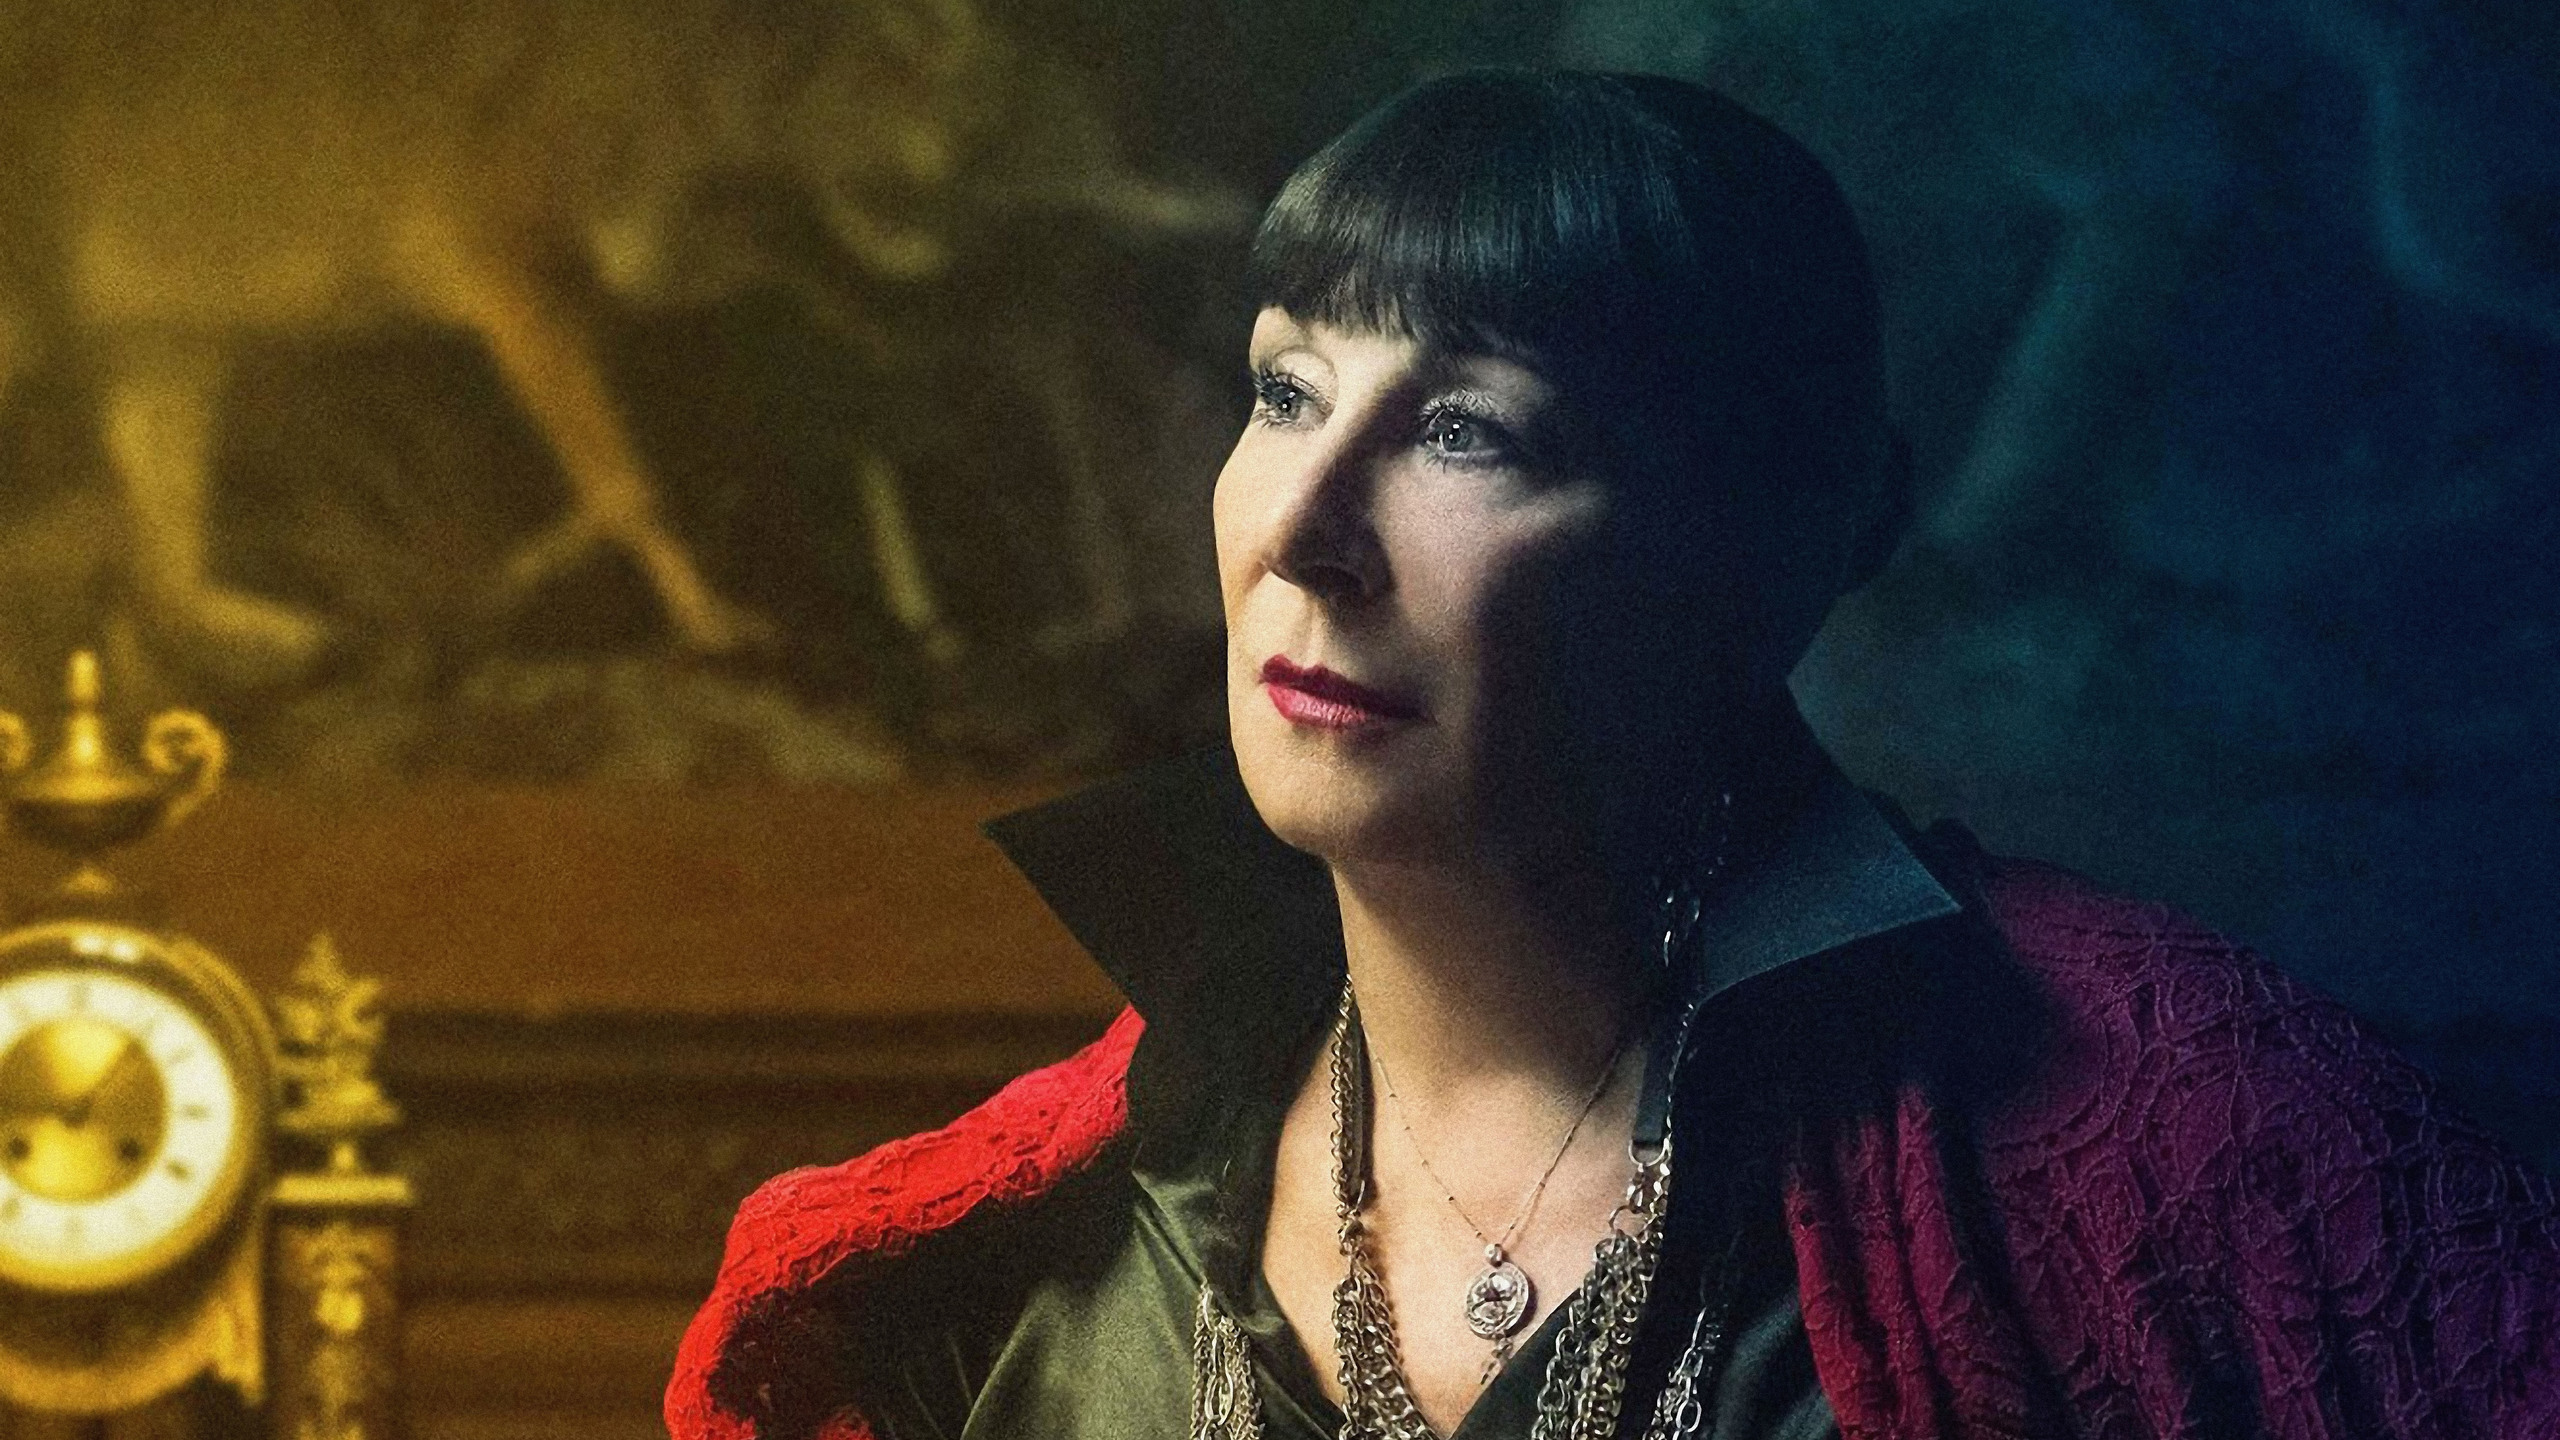 anjelica-huston-as-the-director-in-john-wick-chapter-3-parabellum-2019-8k-88.jpg